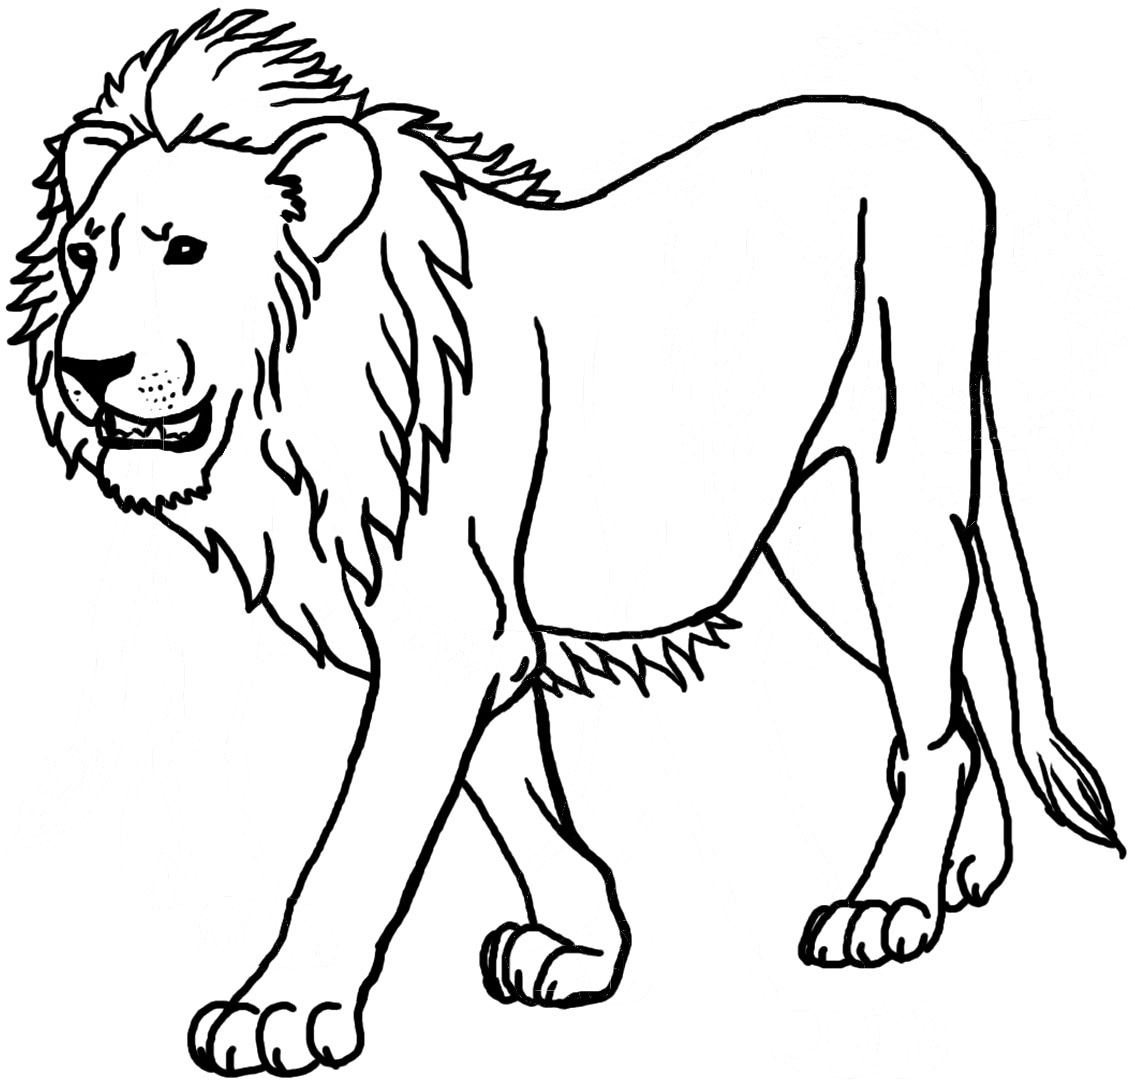 Lion Colour Drawing At GetDrawings